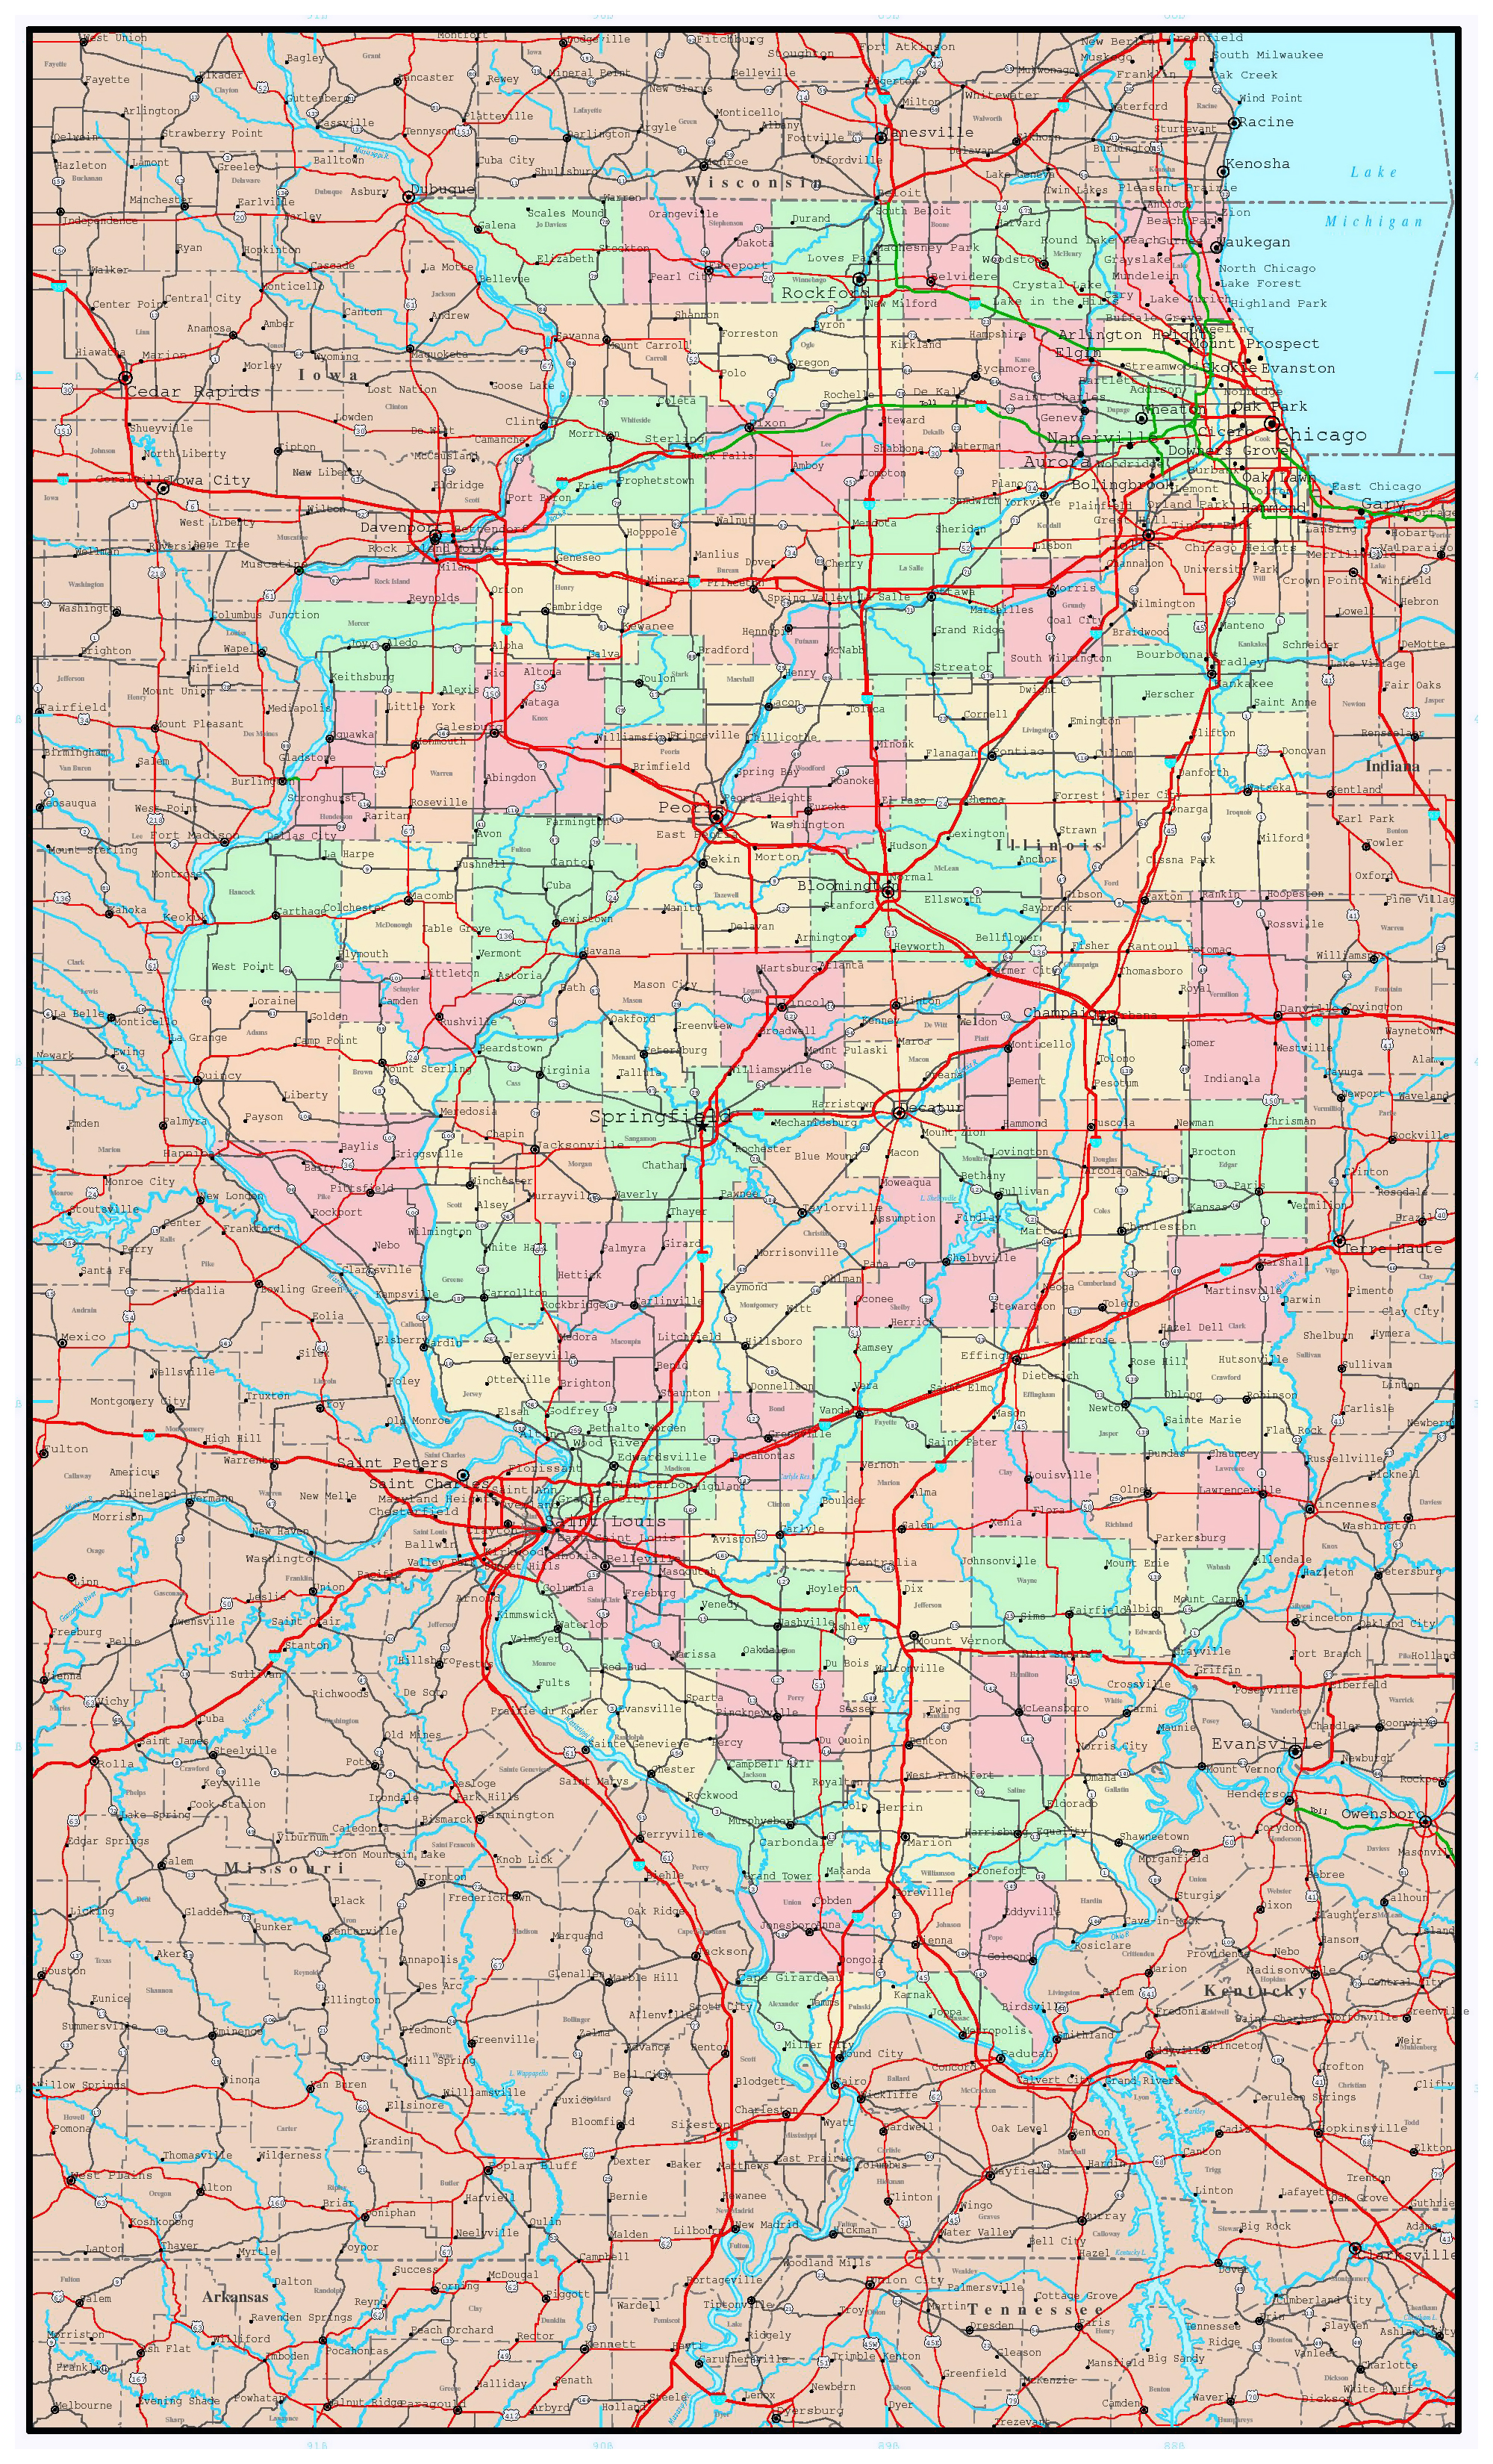 Large administrative map of Illinois state with roads ... on state of alabama, state time, state topography, state list, state parks in north alabama, state function, state of south dakota website, state newspaper, state puzzle, state of louisiana, state population density, state flag, state initials, state climate, state capitals, state city, state names, state populations in order, state of al counties, state of obesity,